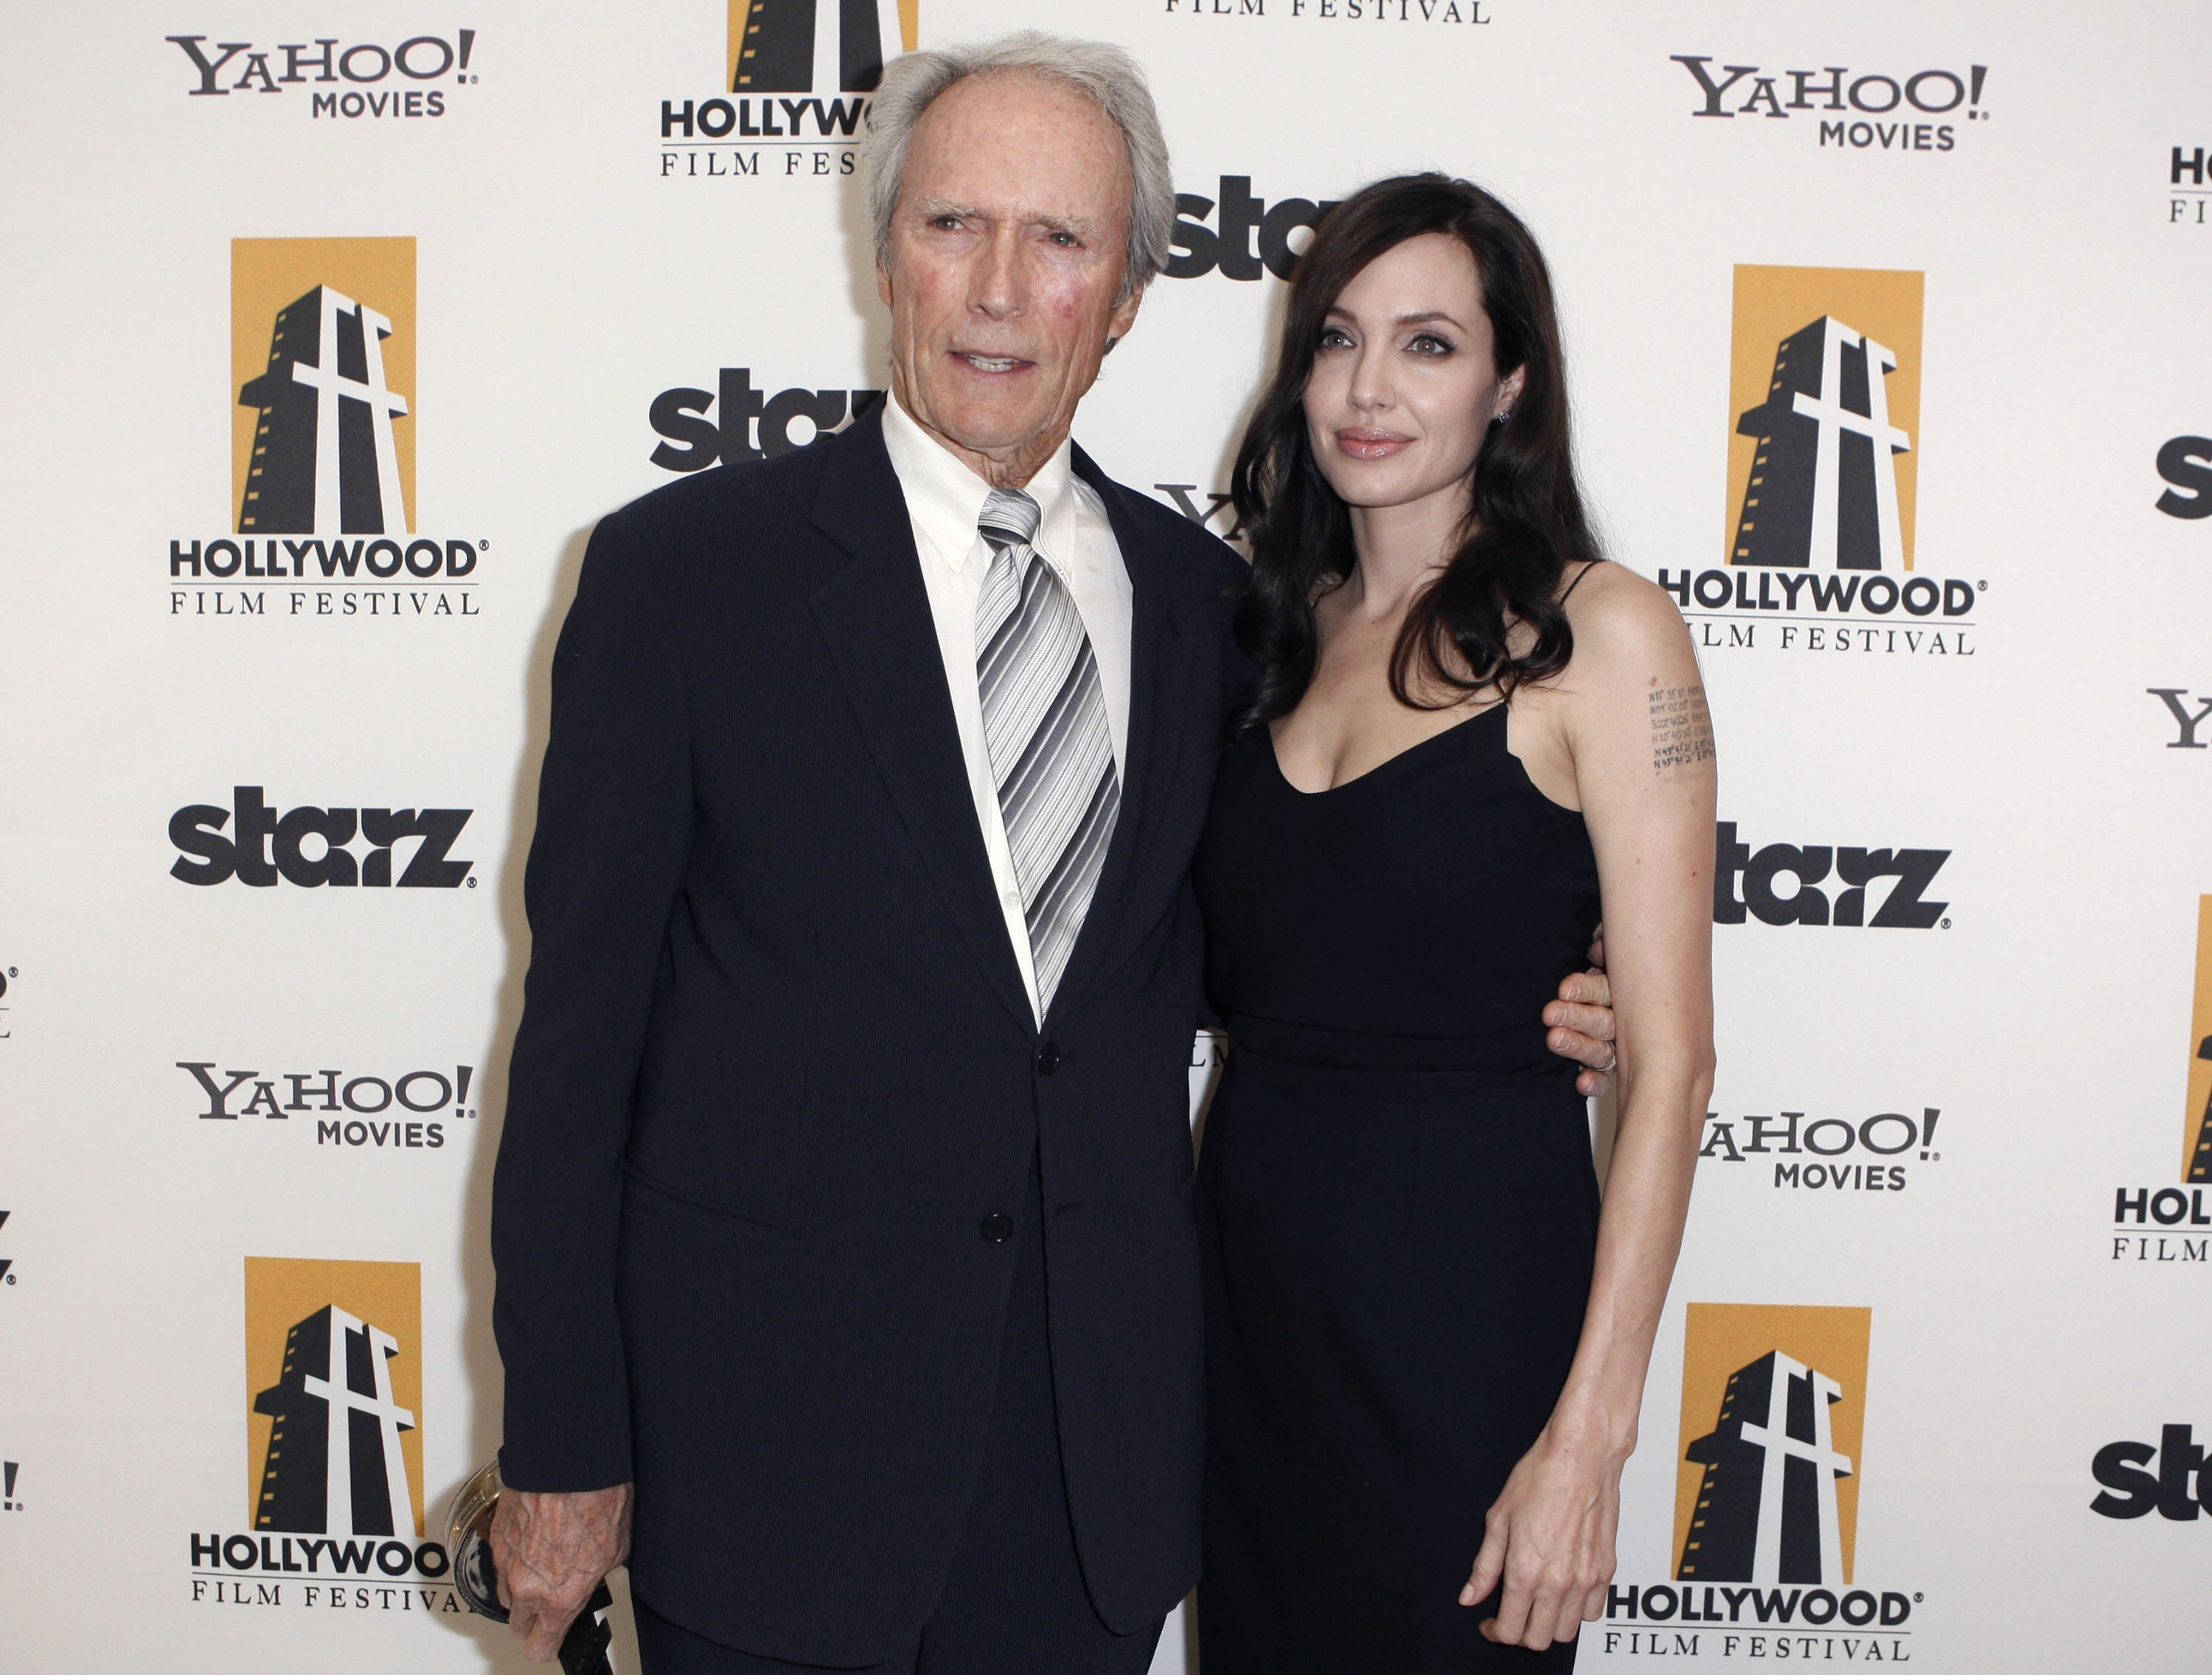 69969_Angelina_Jolie_and_Clint_Eastwood_-_backstage_at_the_Hollywood_Awards_Gala_CU_ISA_003_122_527lo.jpg